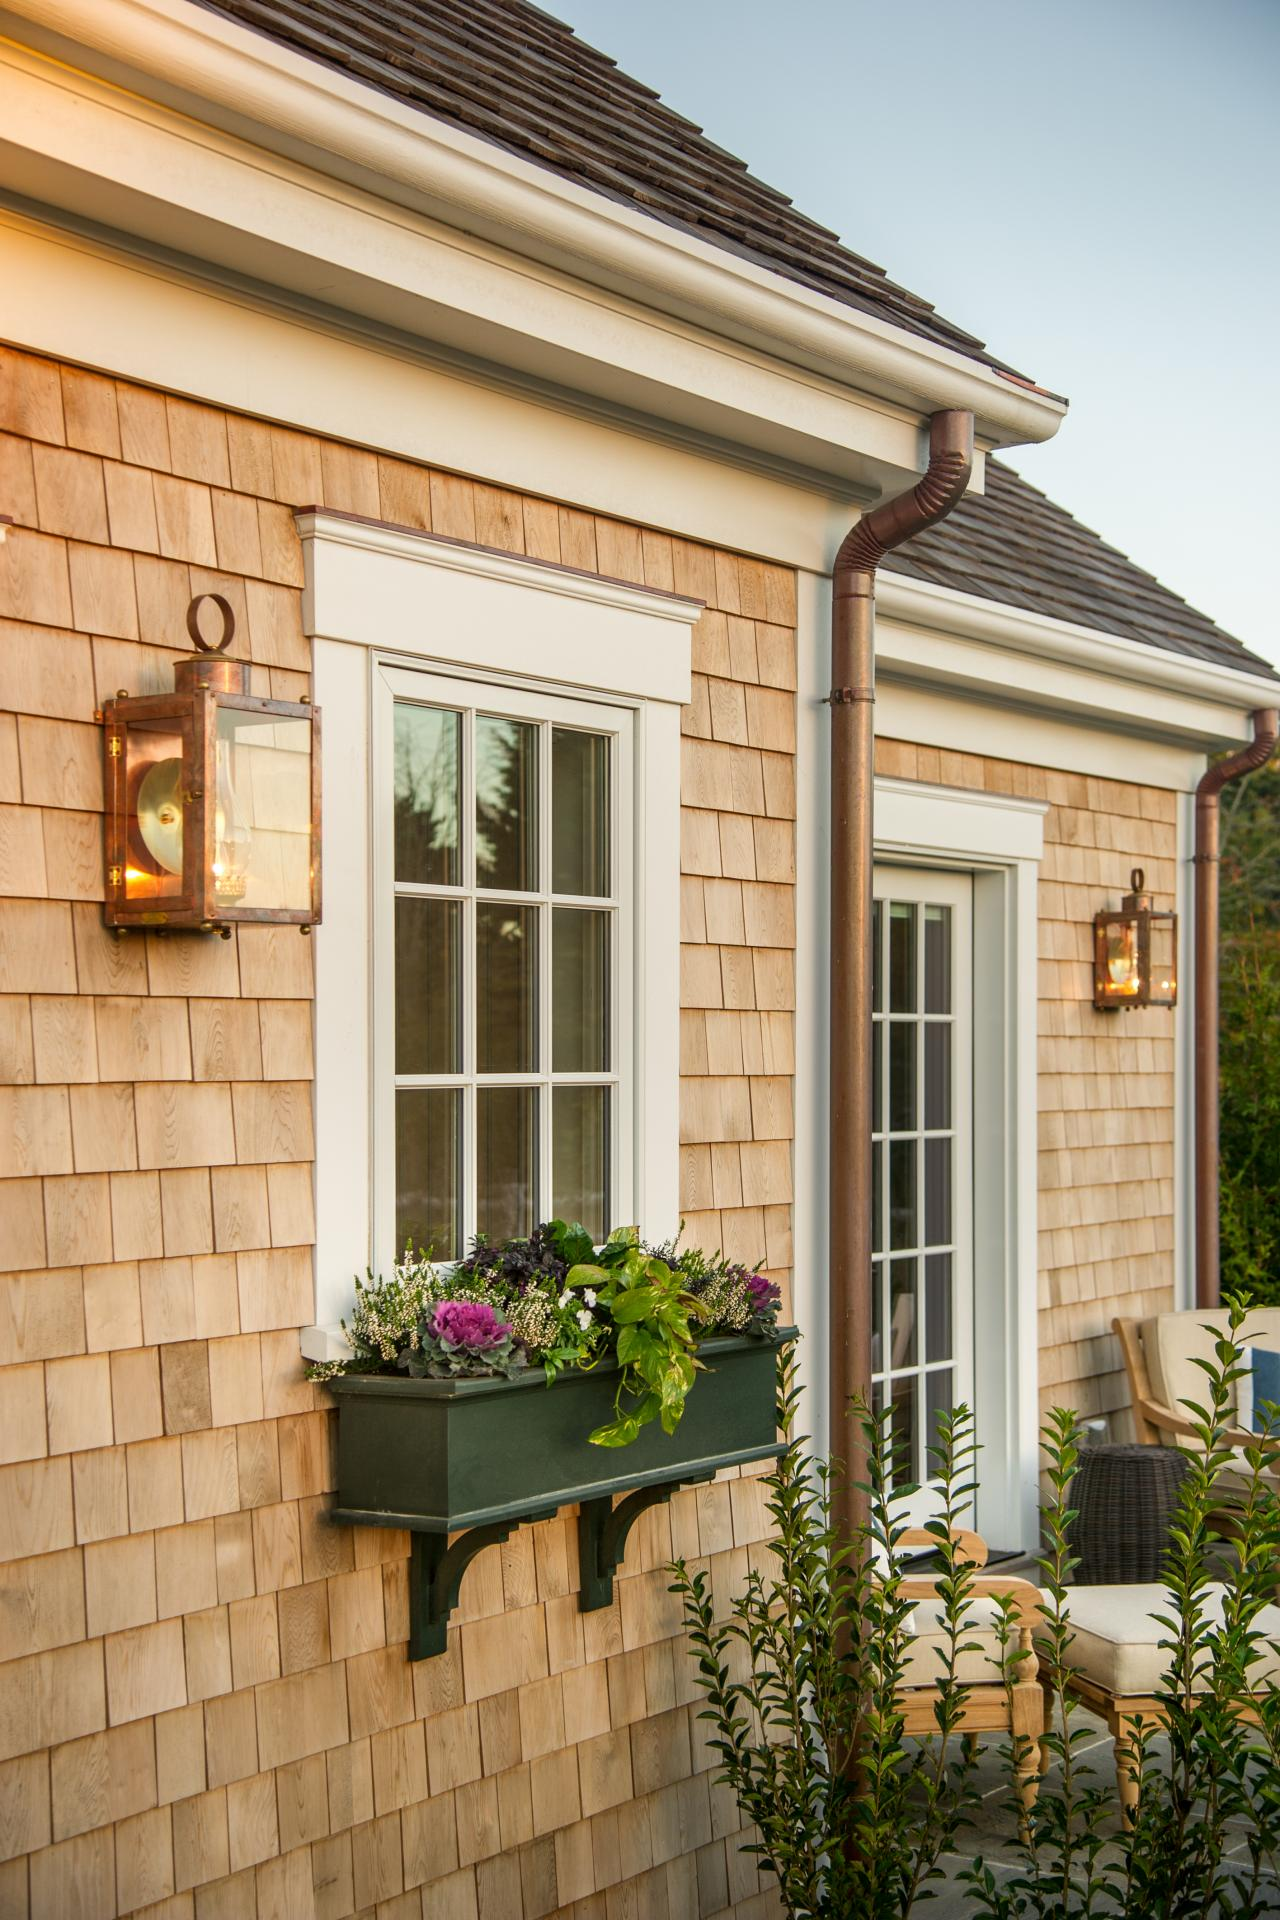 dh2015_garage_window-boxes_v.jpg.rend.hgtvcom.1280.1920